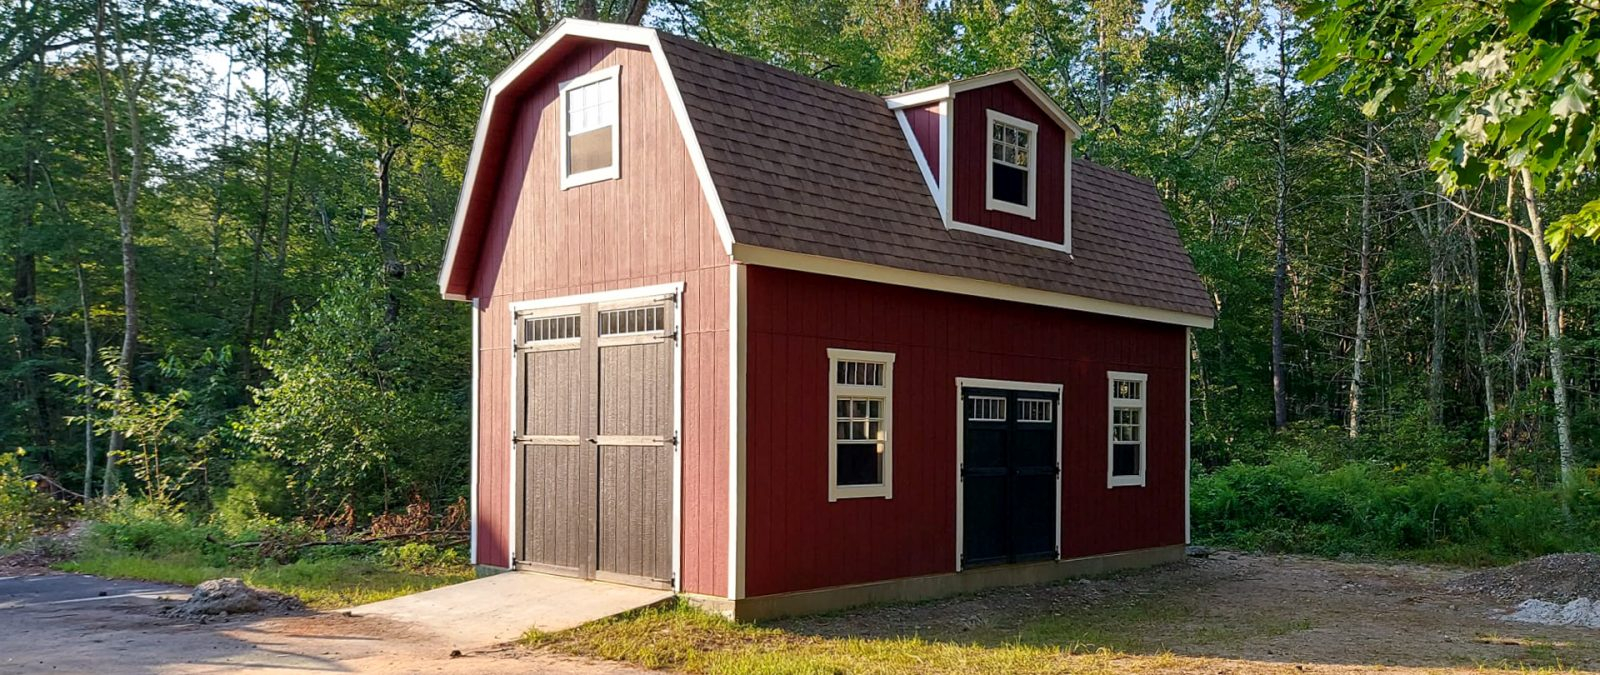 14x28 2 story shed barn